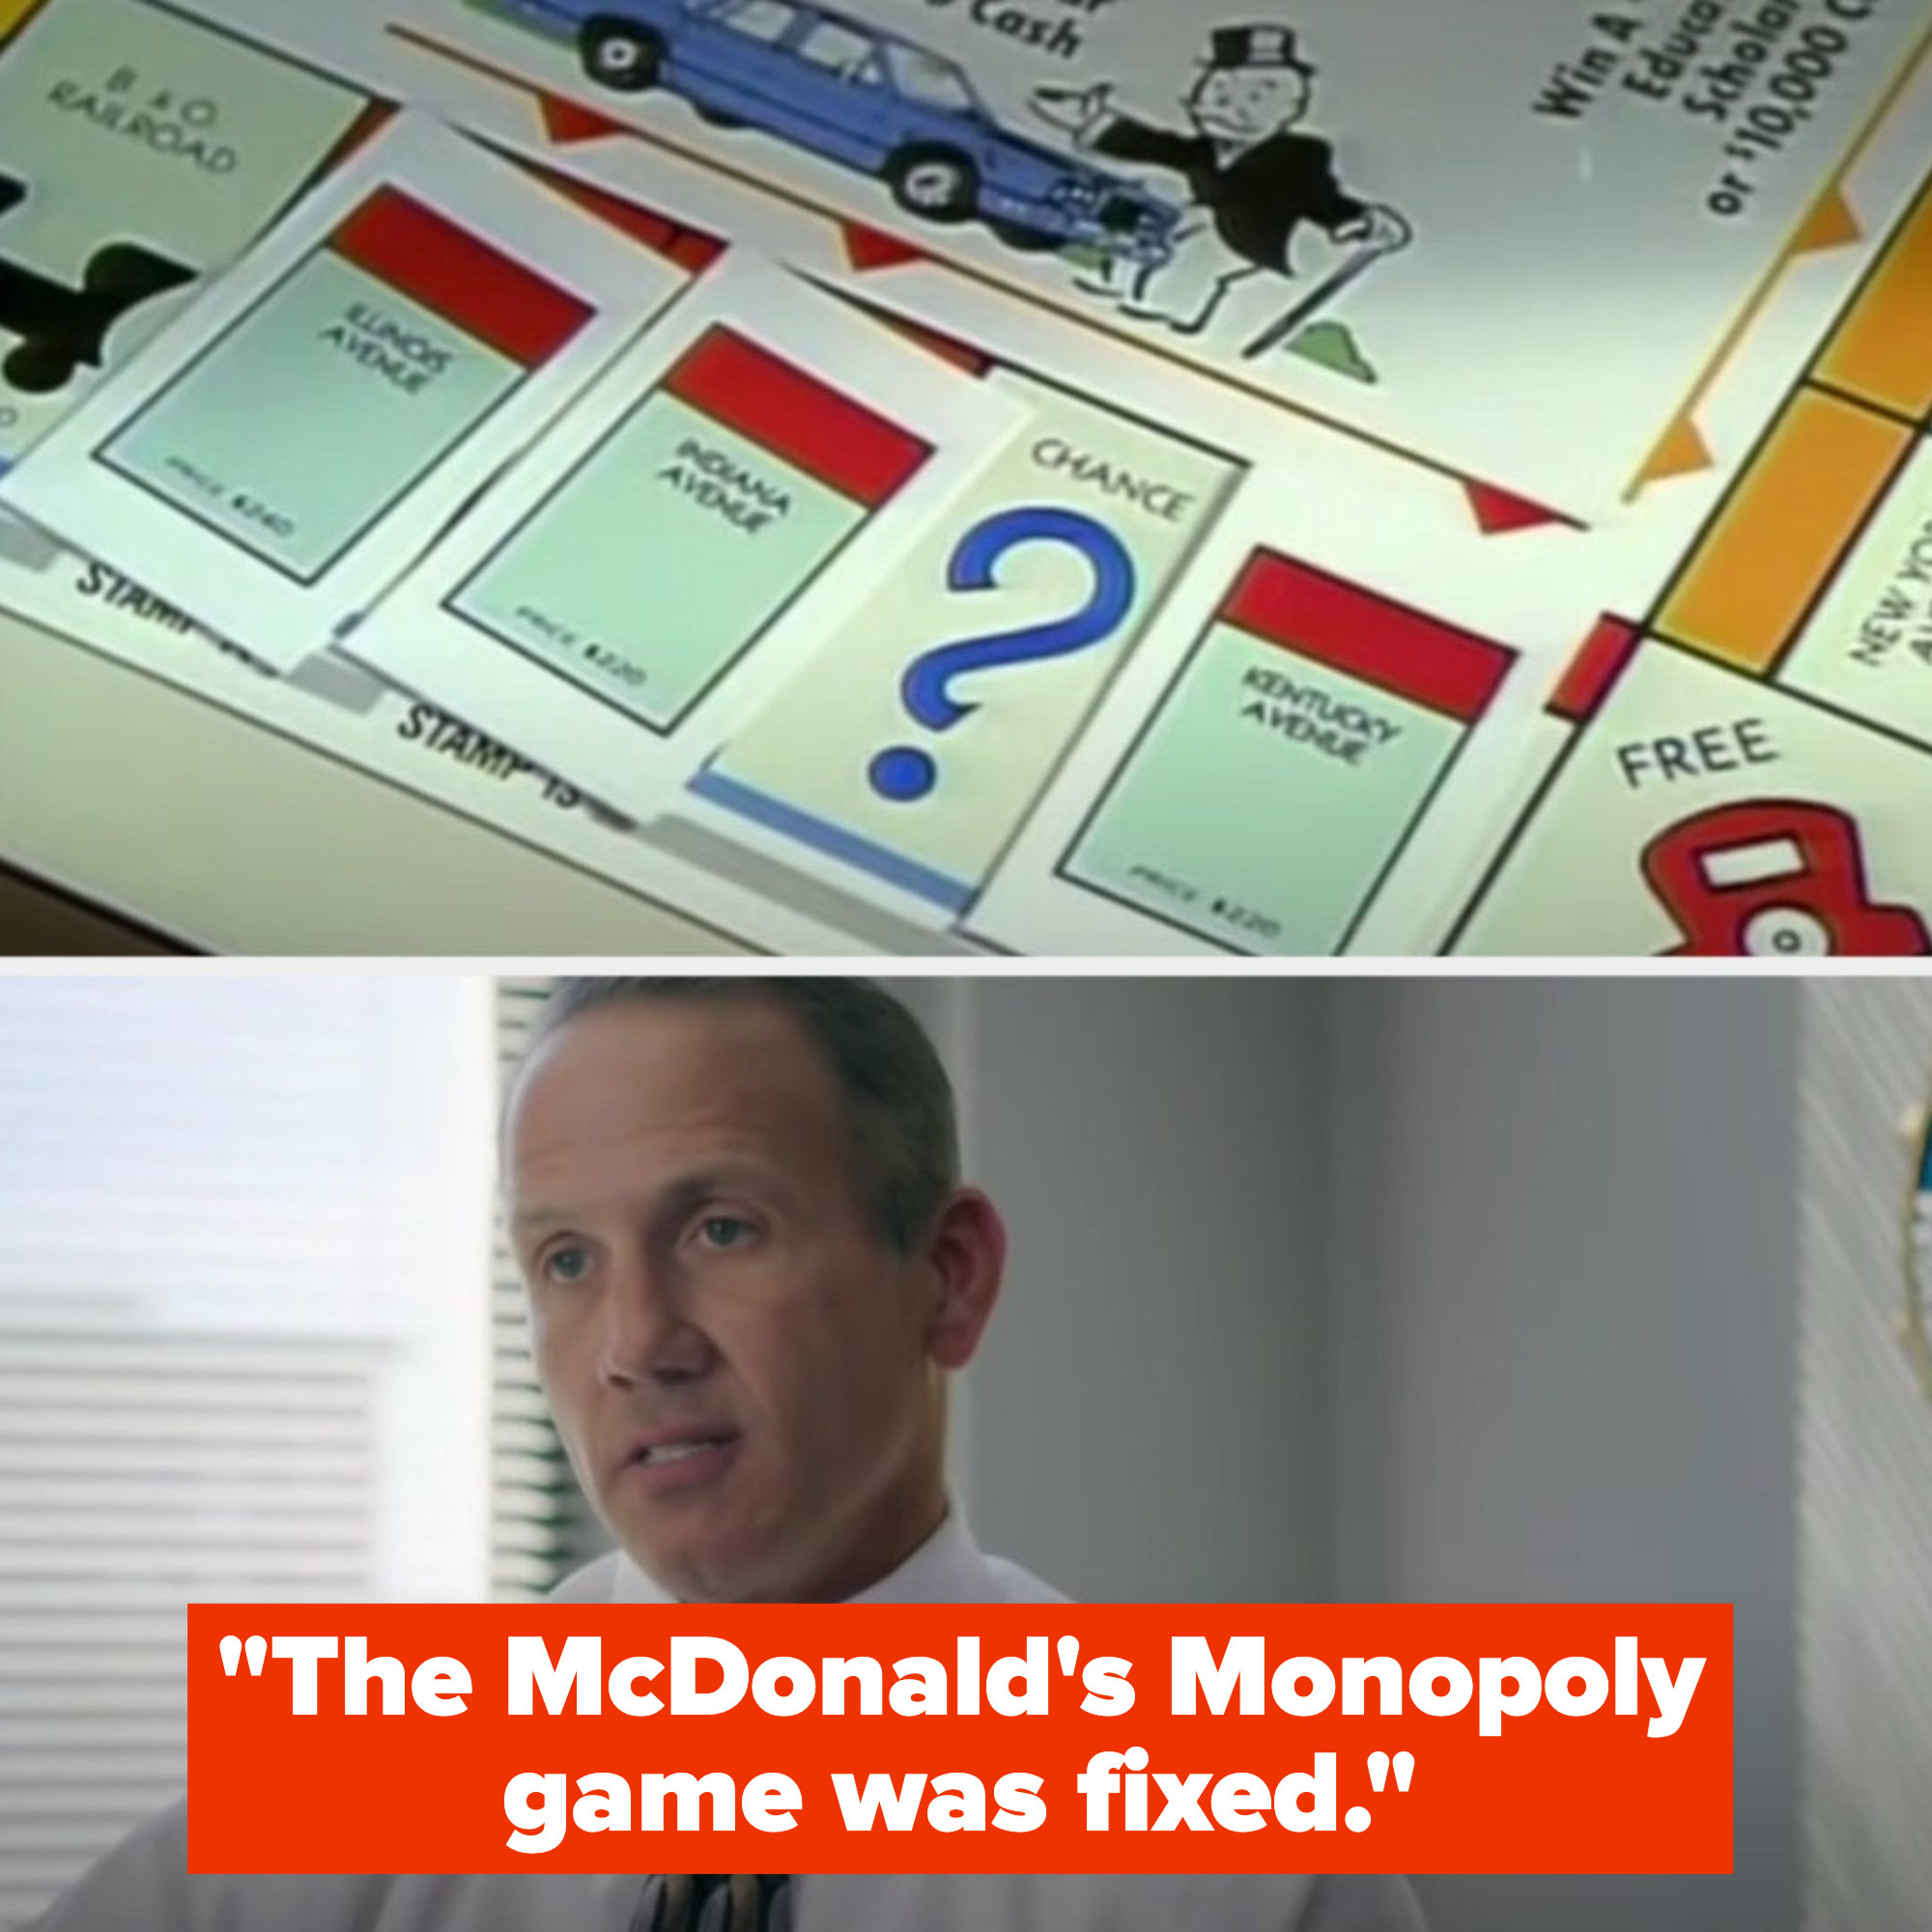 Pictures of the McDonald's Monopoly game, with a man saying it's fixed